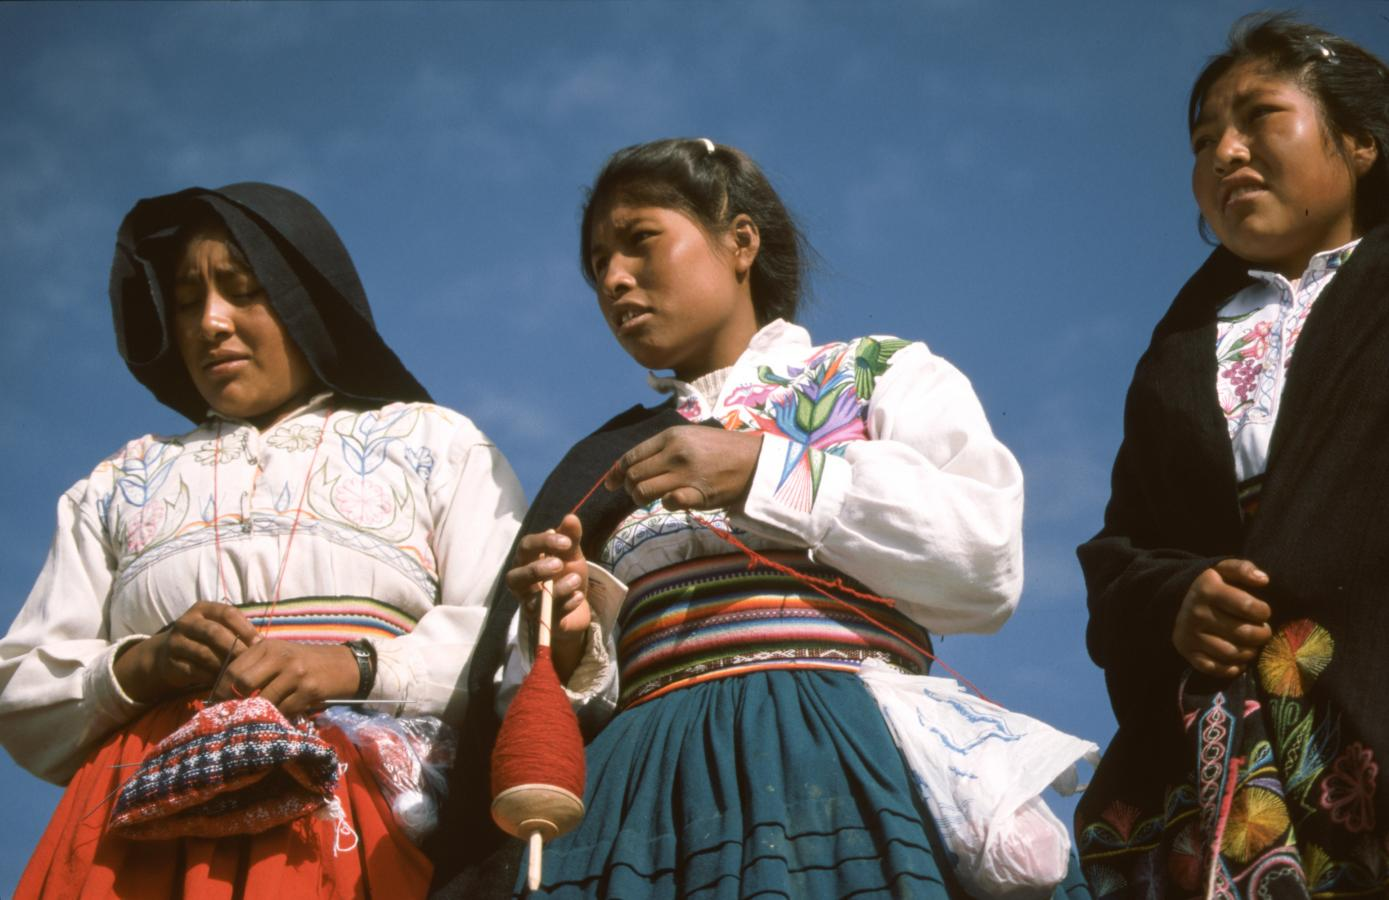 women-around-lake-titicaca-peru-2001